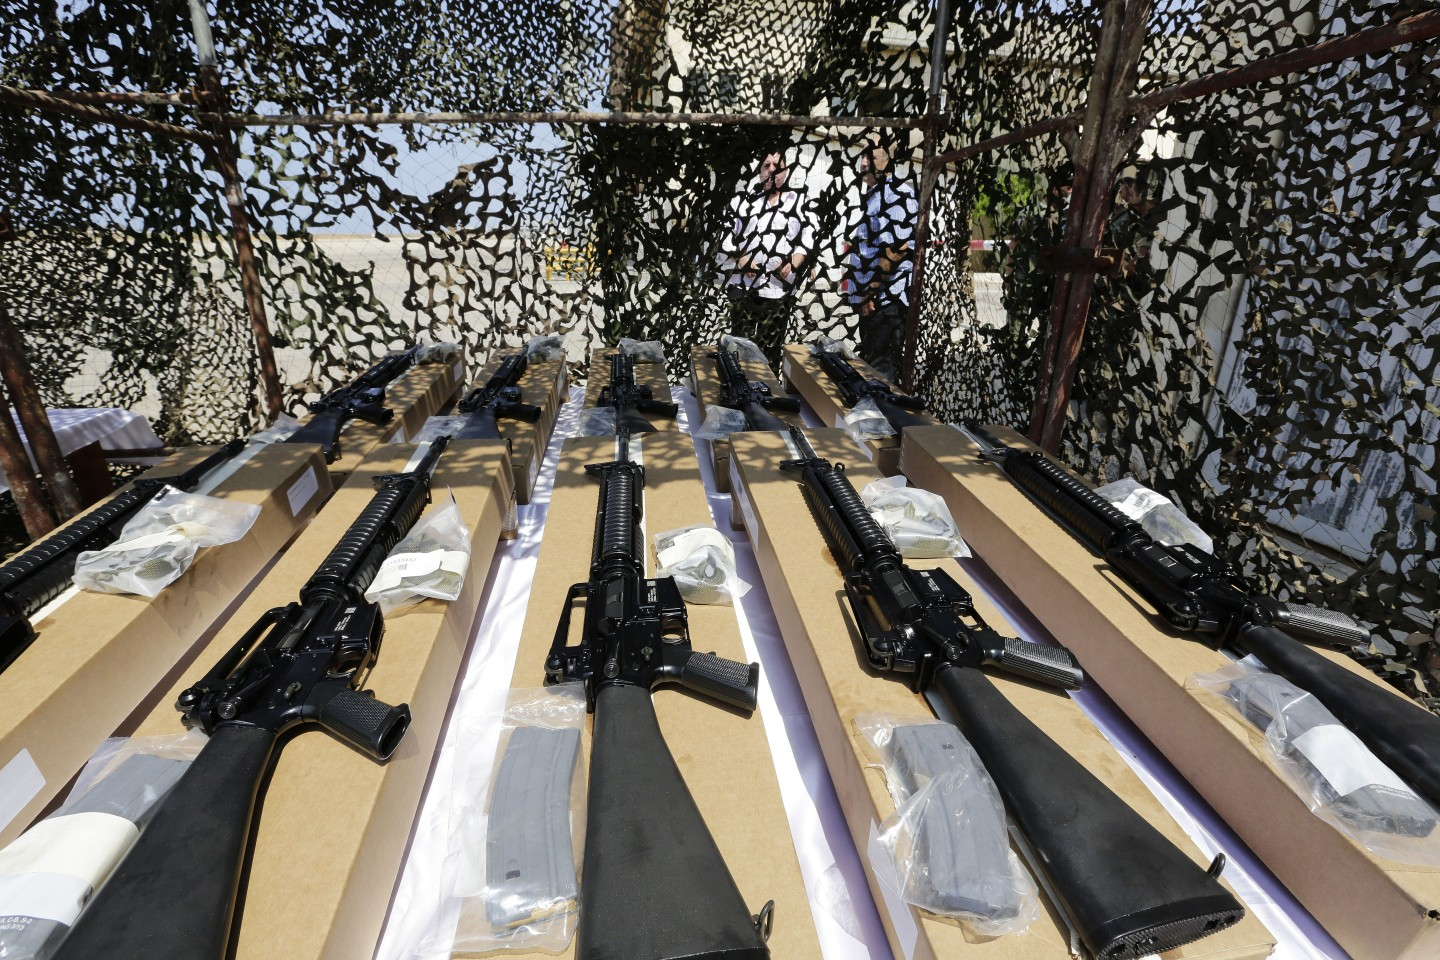 Lost Weapons Prompt Halt of Military Gear to Some Sheriff Departments